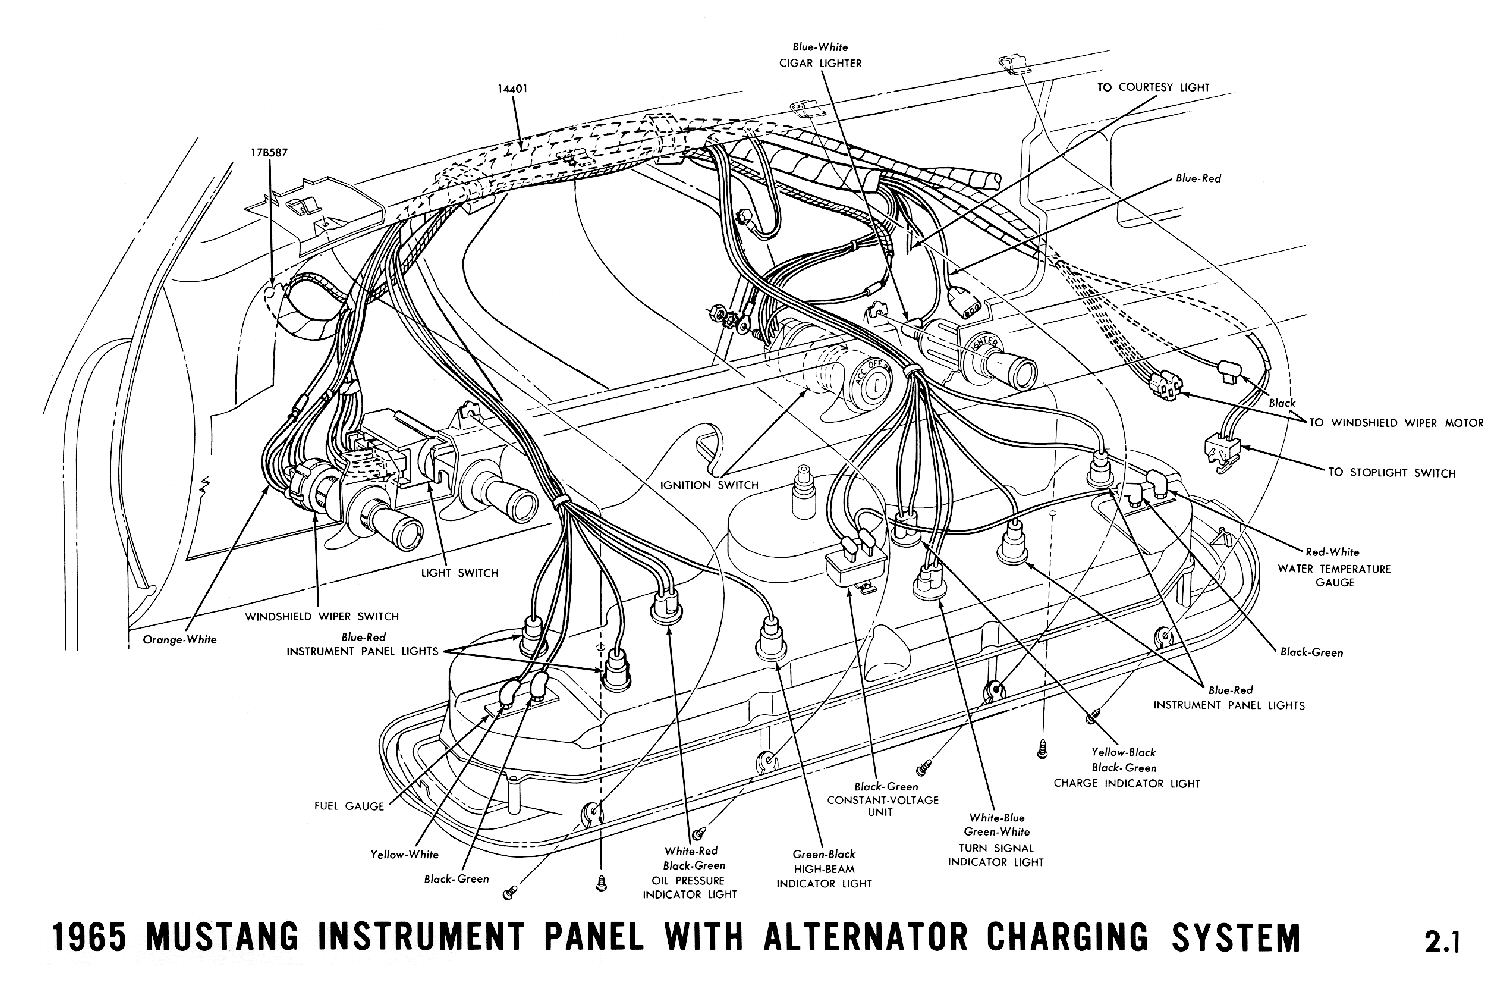 1965a 1965 mustang wiring diagrams average joe restoration 1965 mustang turn signal wiring diagram at crackthecode.co